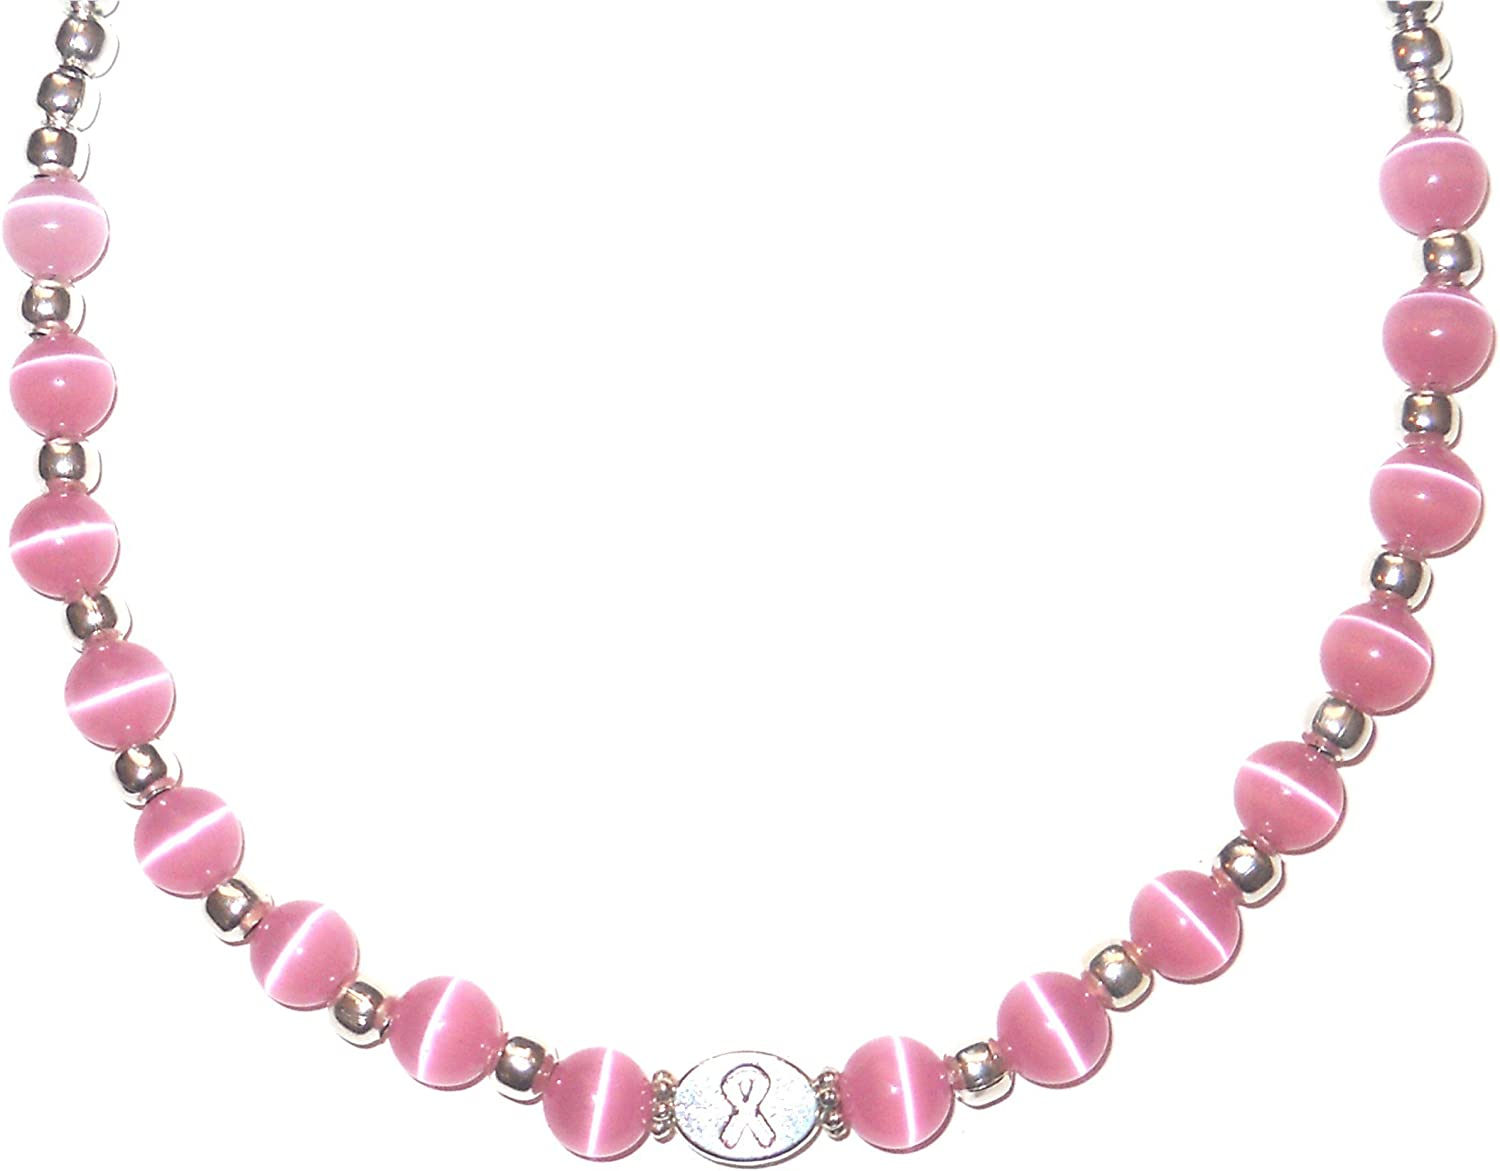 8mm breast cancer ribbon beads